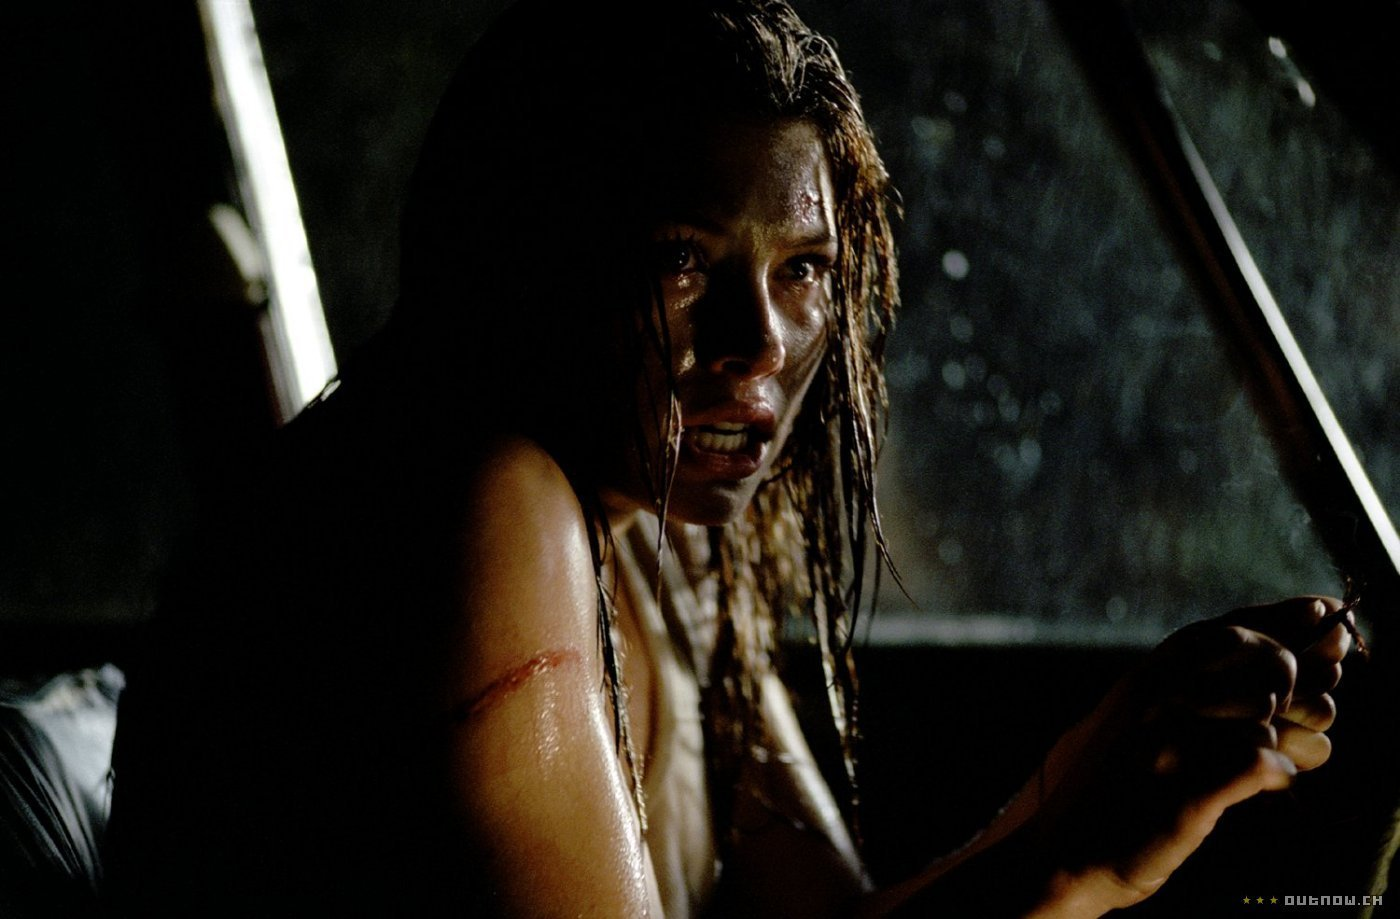 The-Texas-Chainsaw-Massacre-2003-stills-the-texas-chainsaw-massacre-series-32780